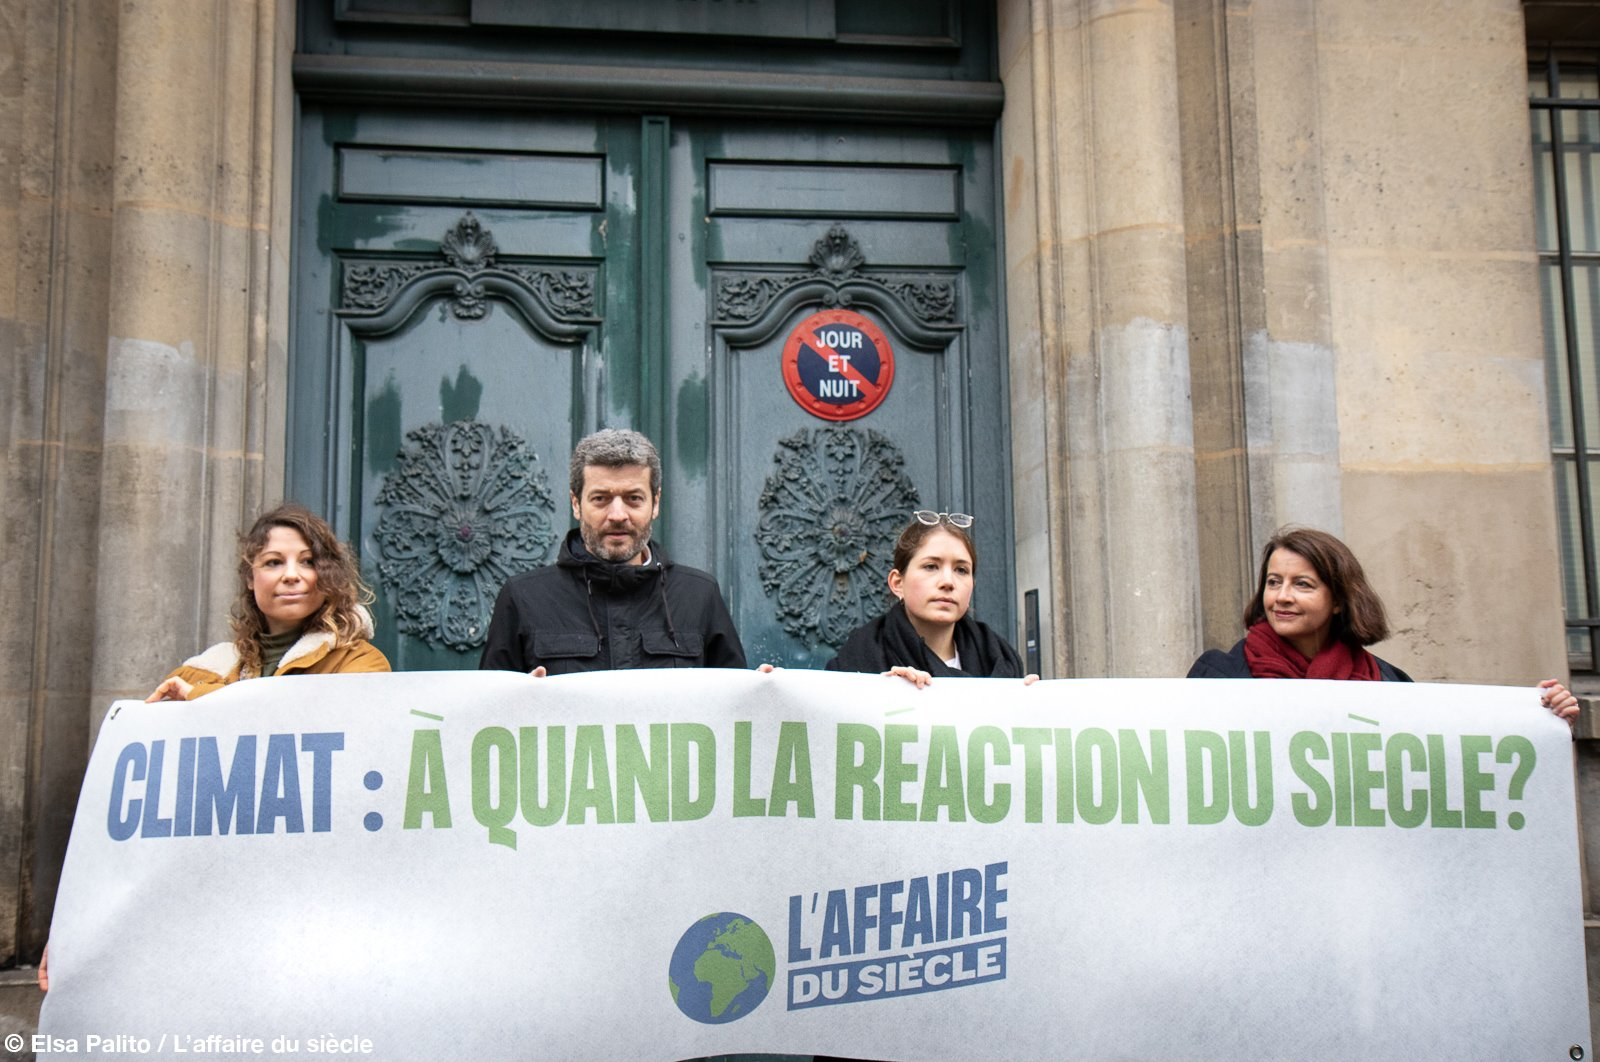 France Gets Sued by Own Citizens for Failing to Fight Climate Change